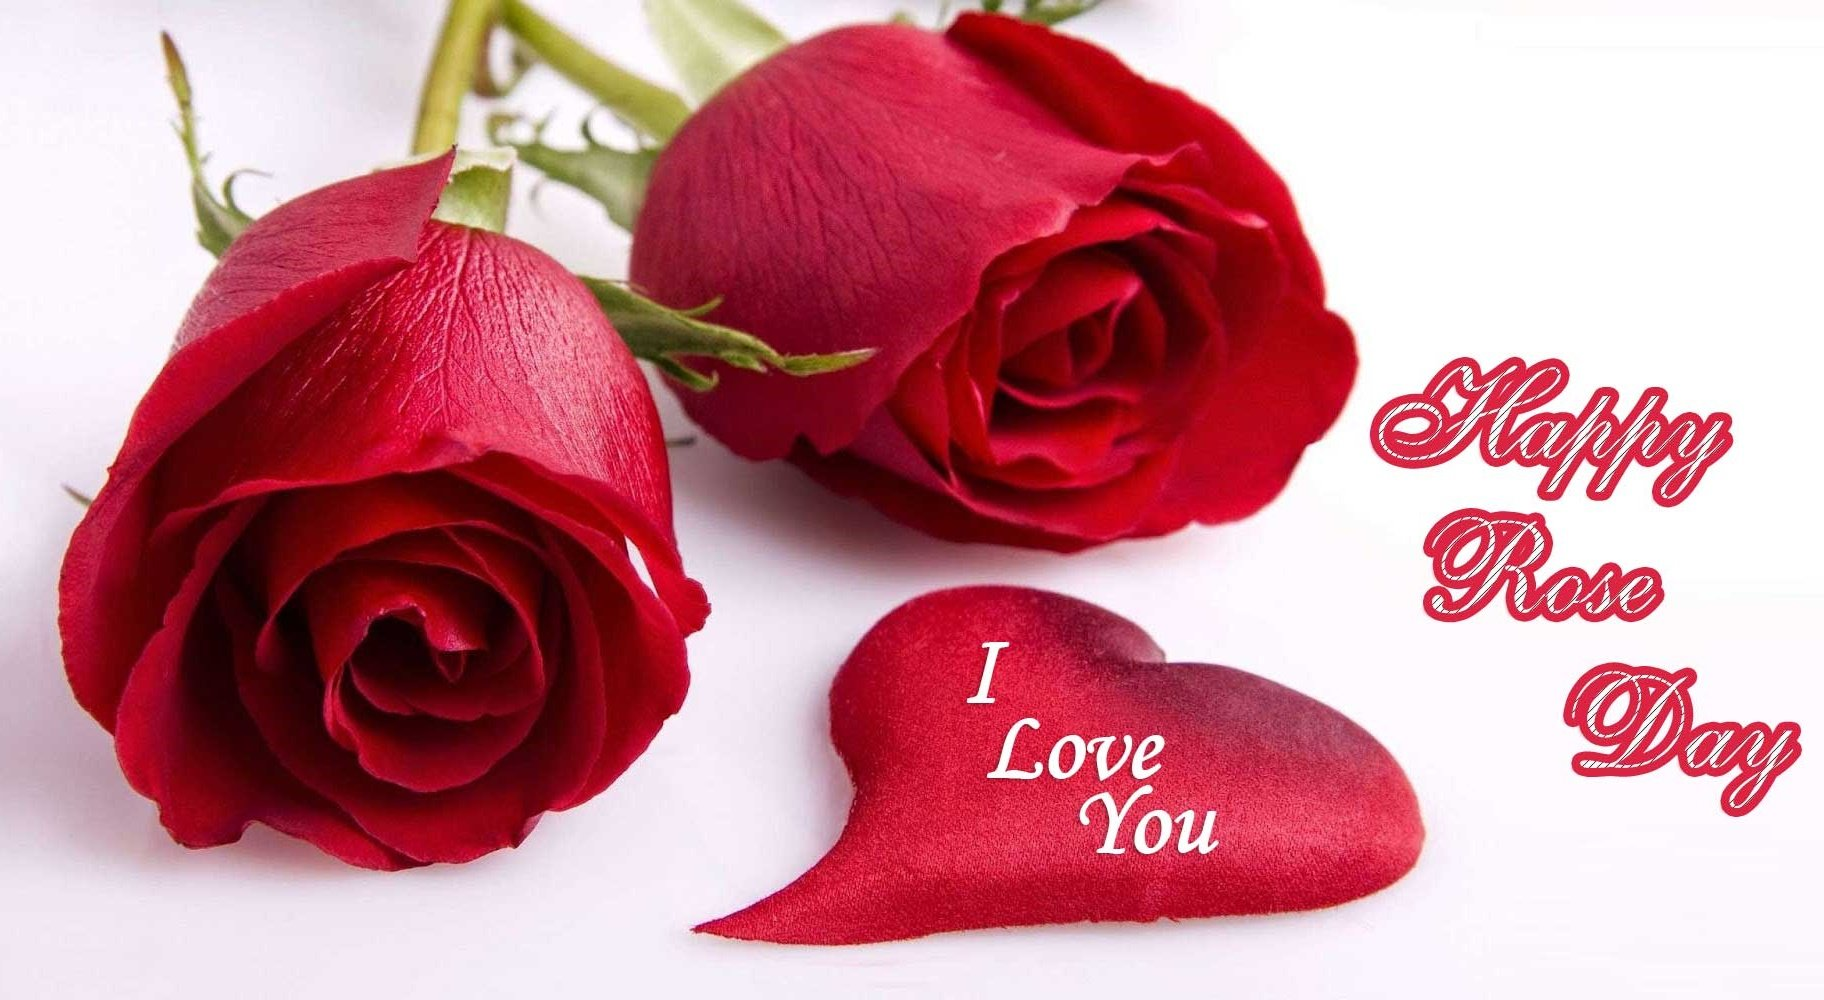 Happy Rose Day Greeting Card Images